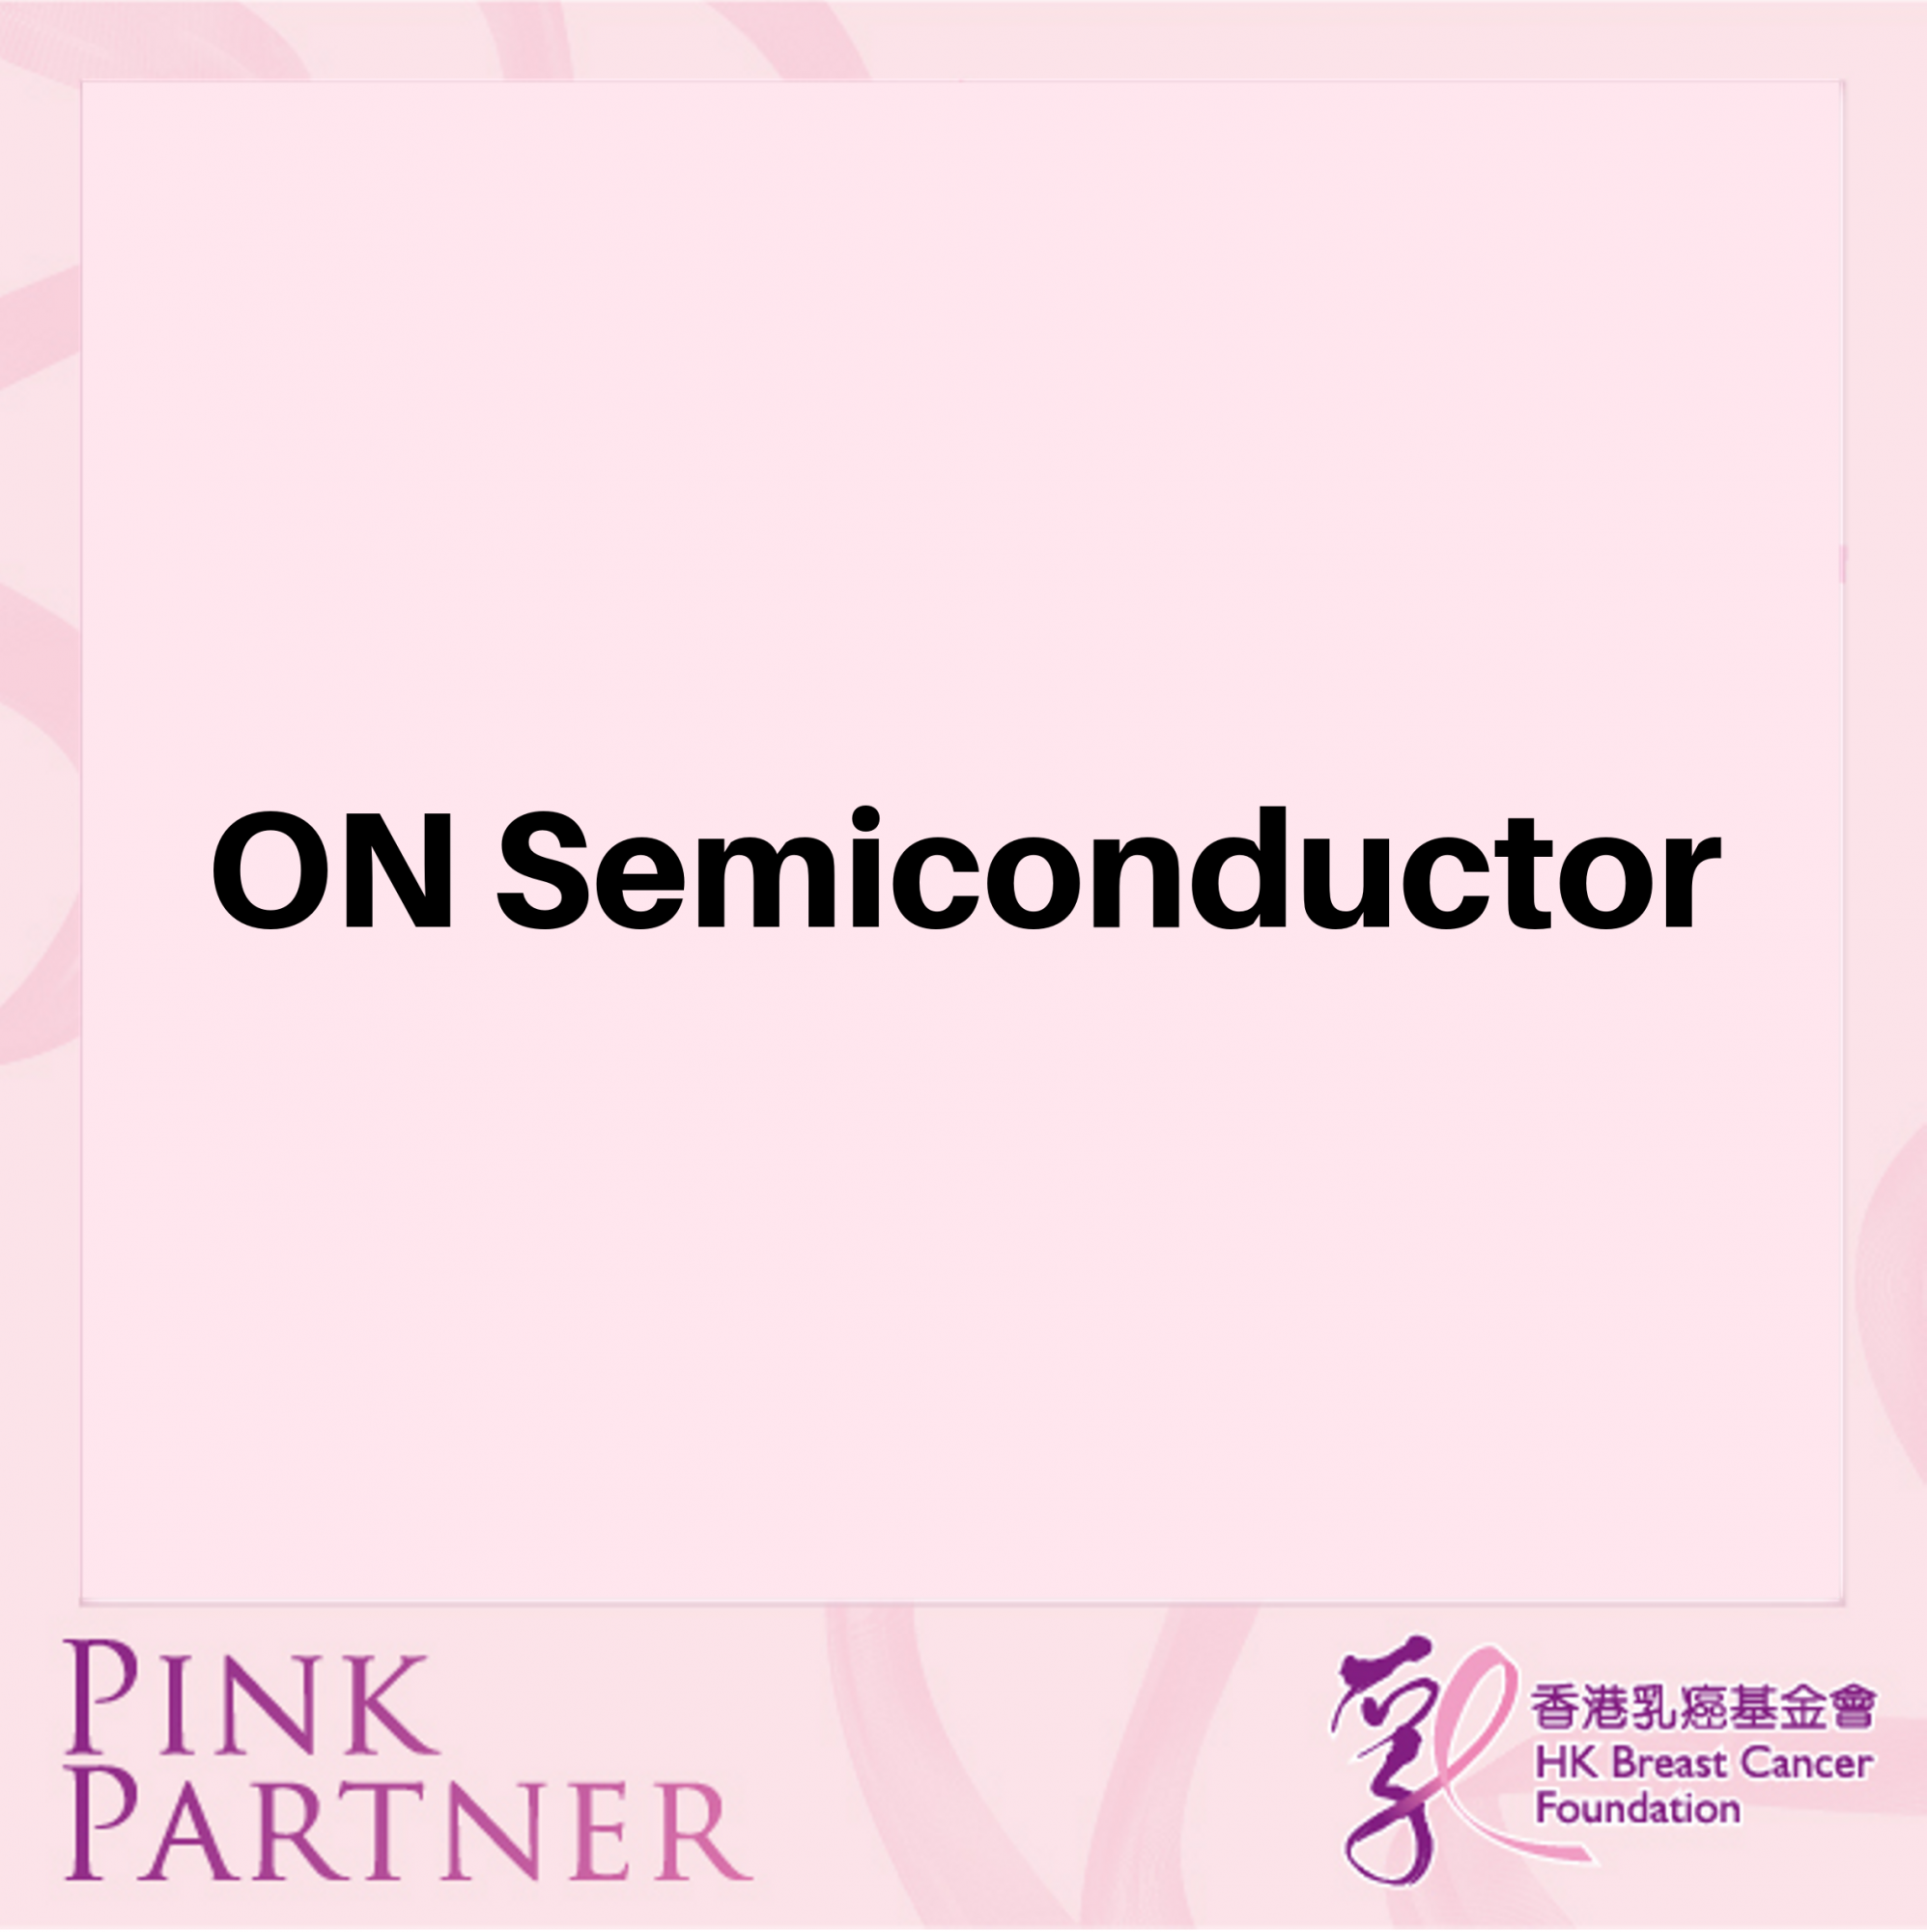 Self Photos / Files - ON Semiconductor PP 2019